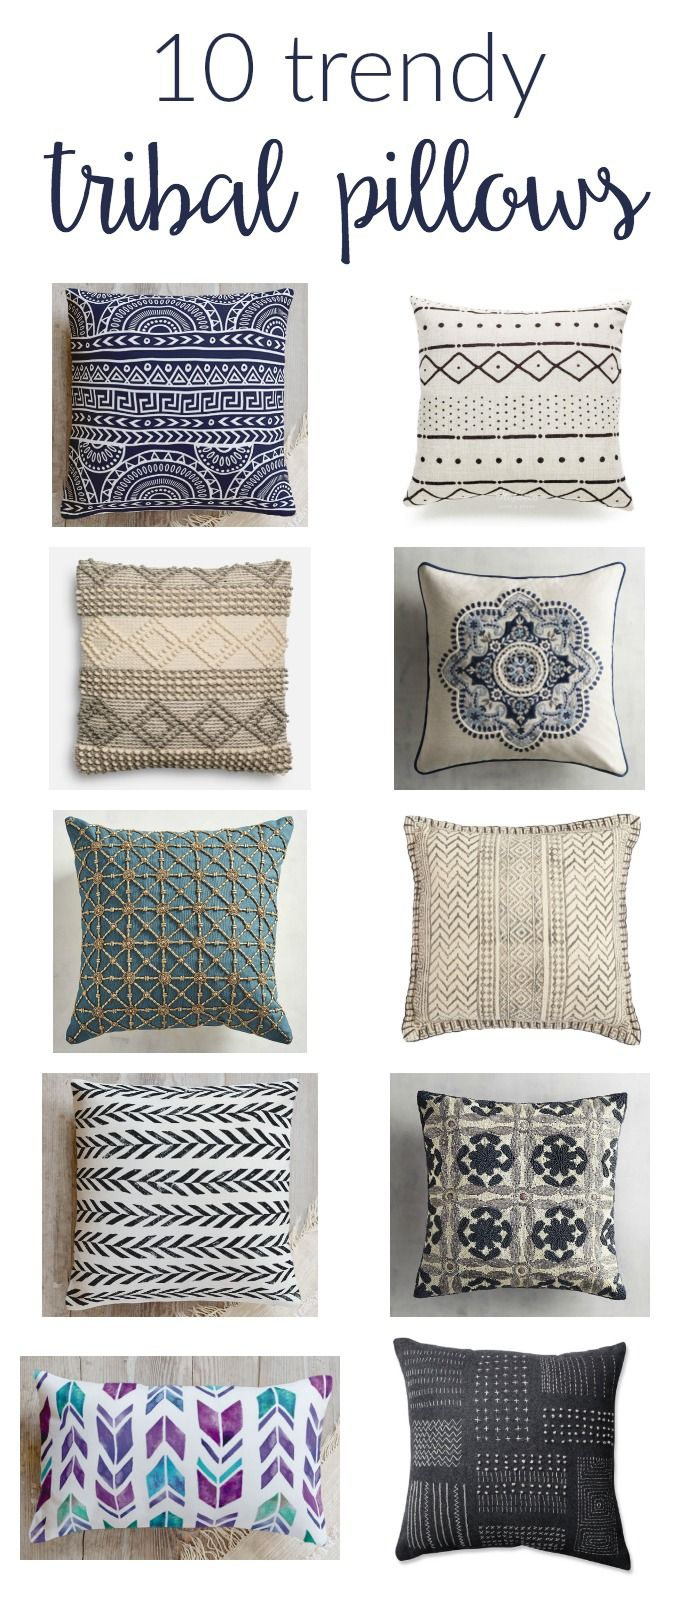 Trendy Tribal Throw Pillows Two Purple Couches Tribal Throw Pillows Trendy Throw Pillows Throw Pillows